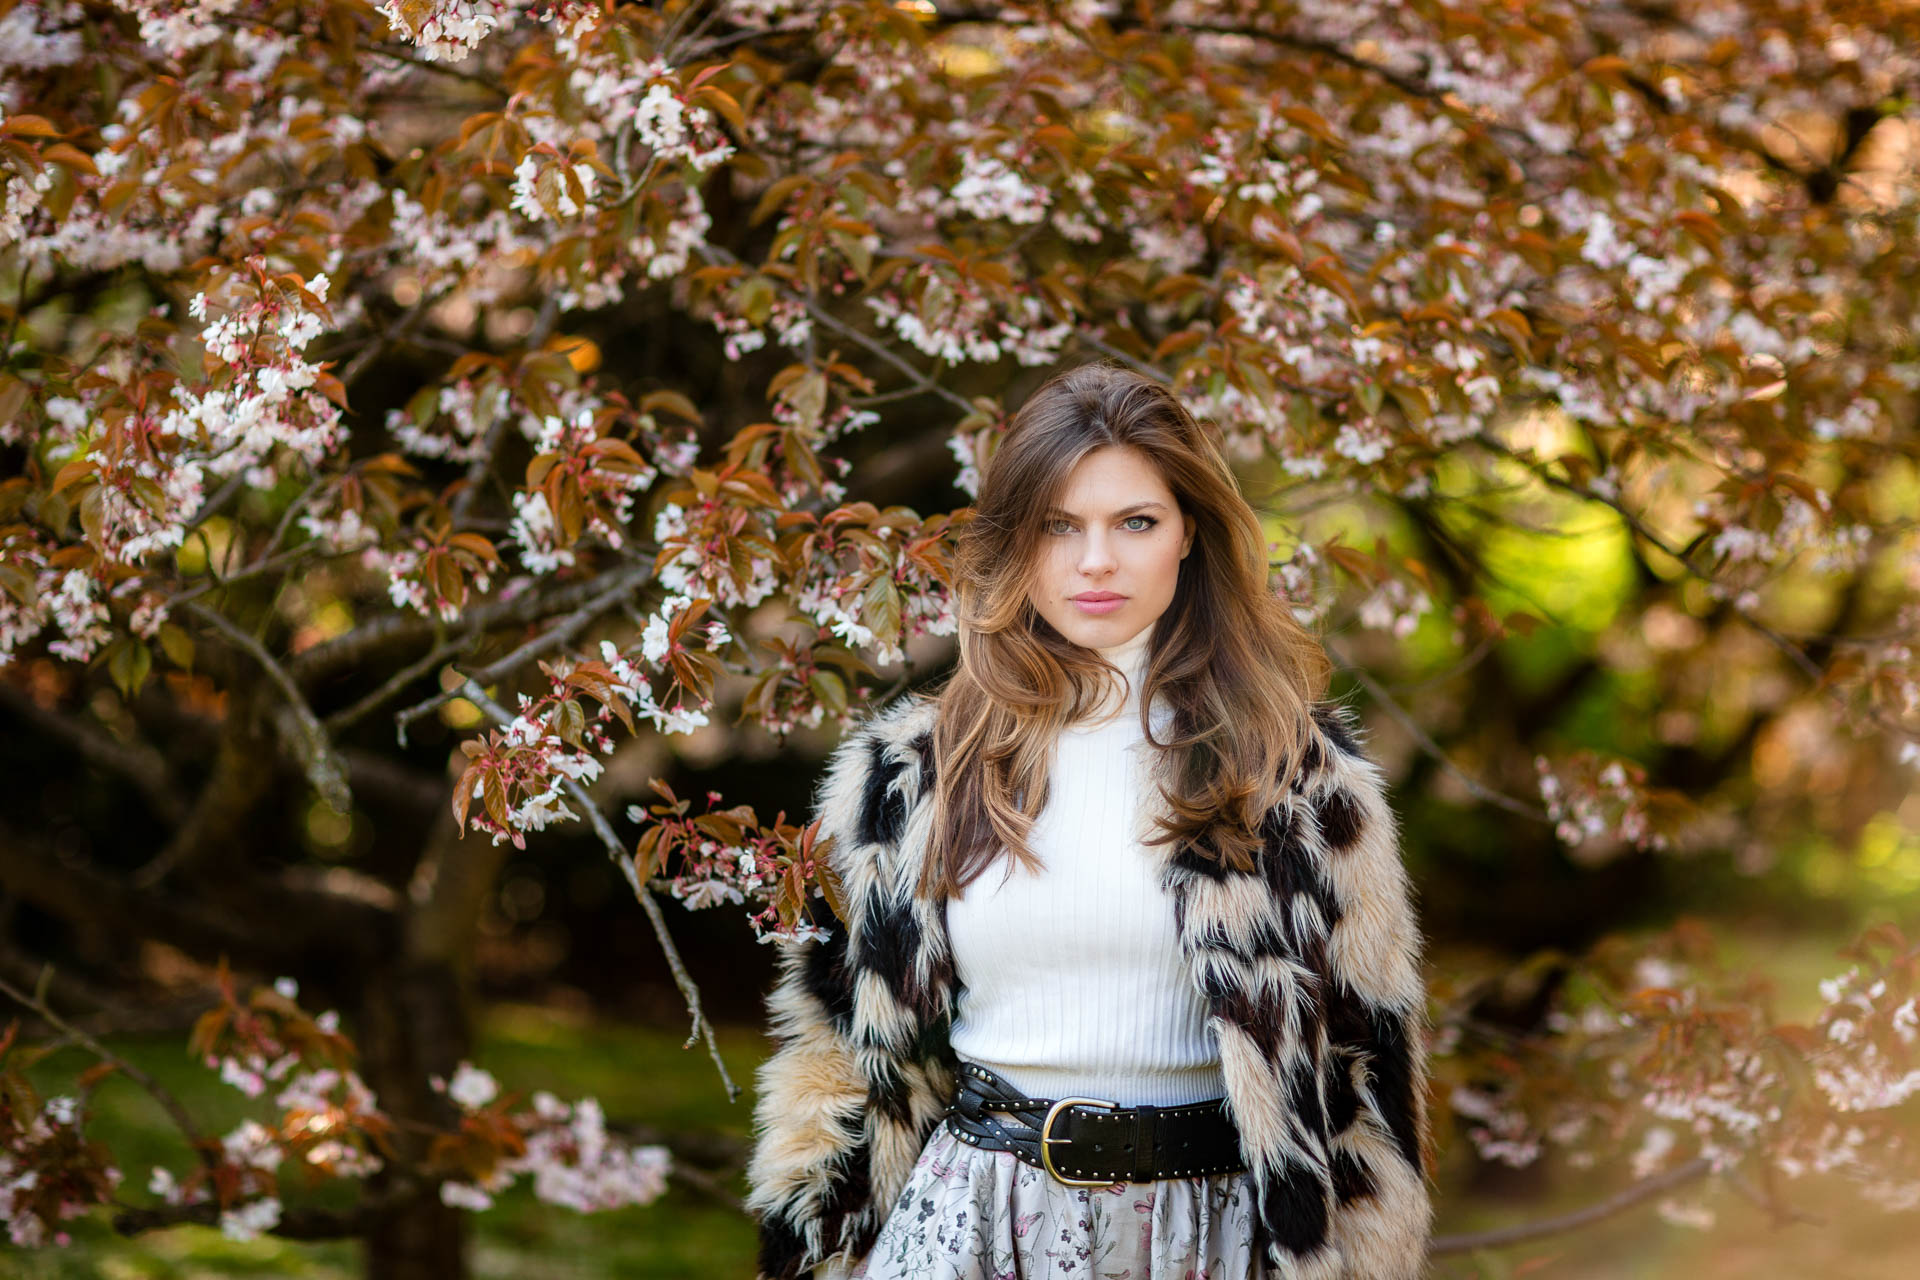 personal brand portrait in park with fur coat